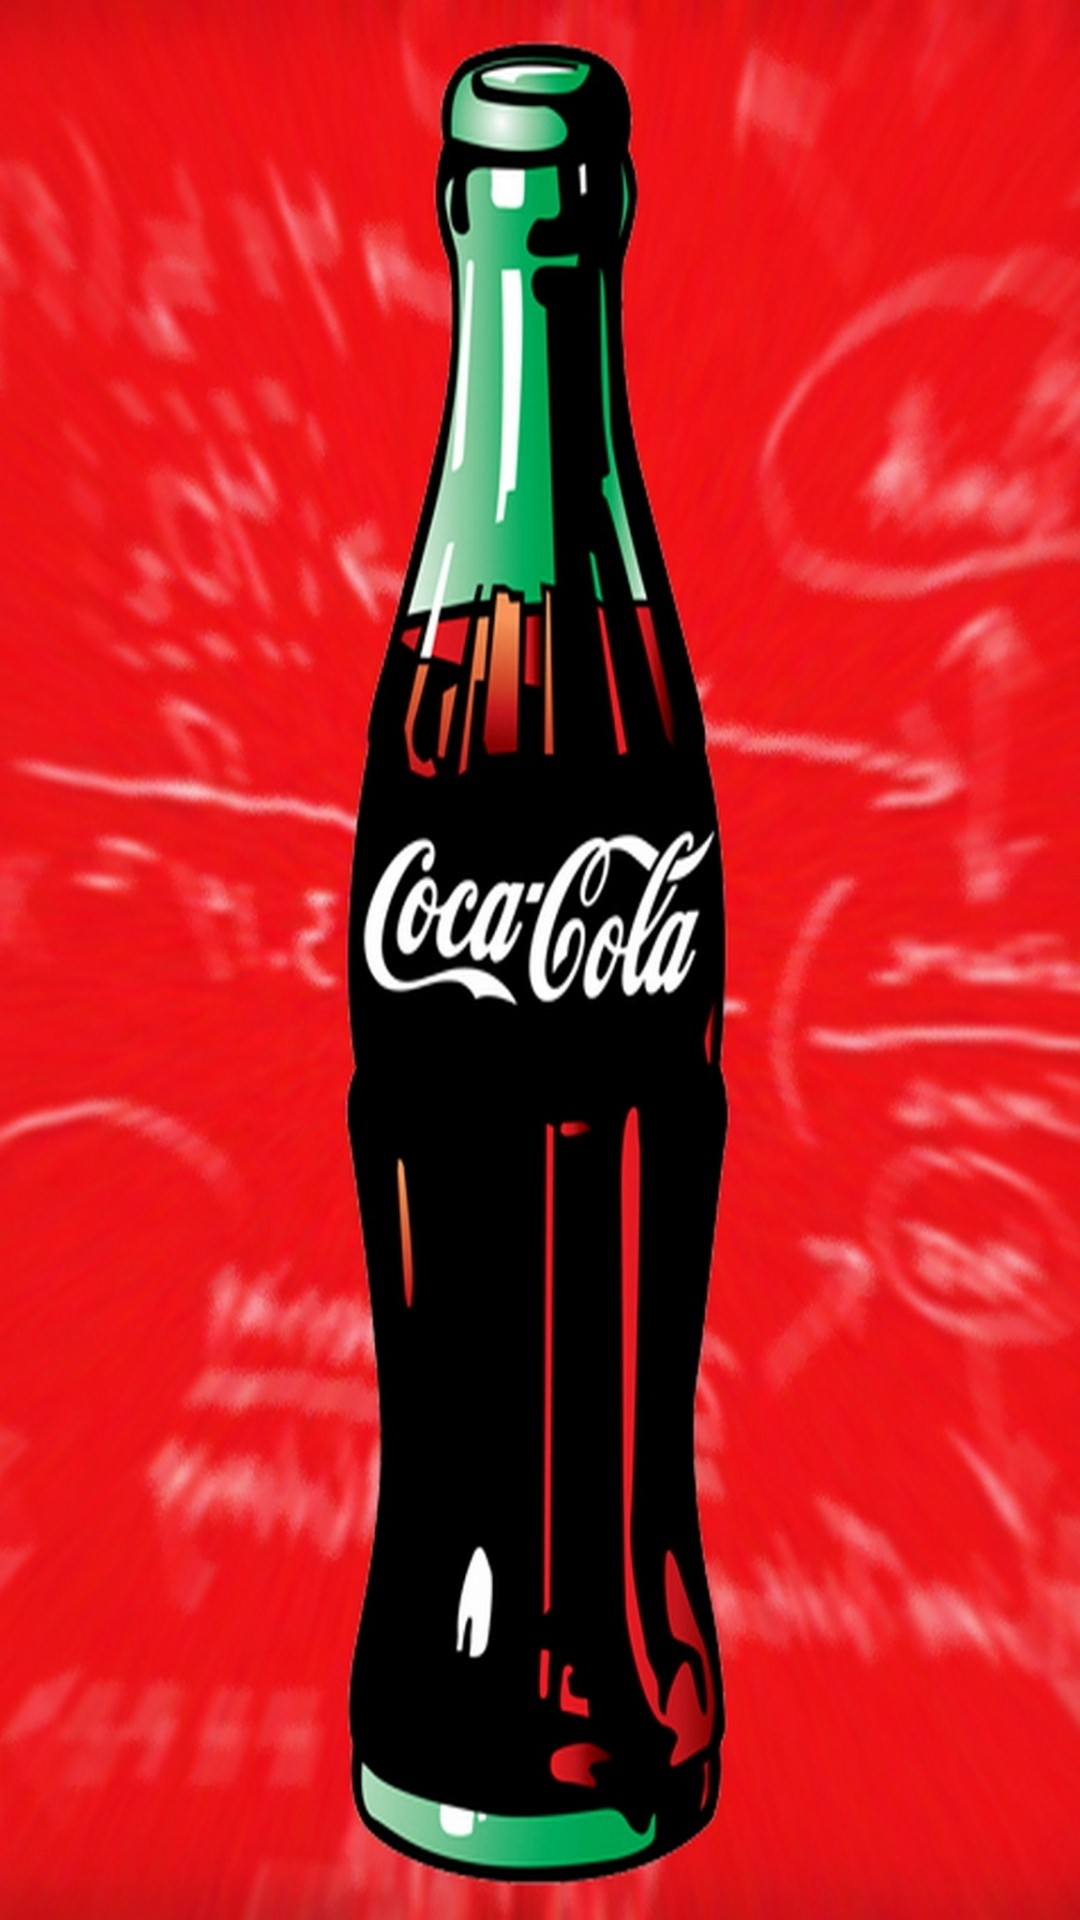 Coca Cola iphone wallpaper high quality